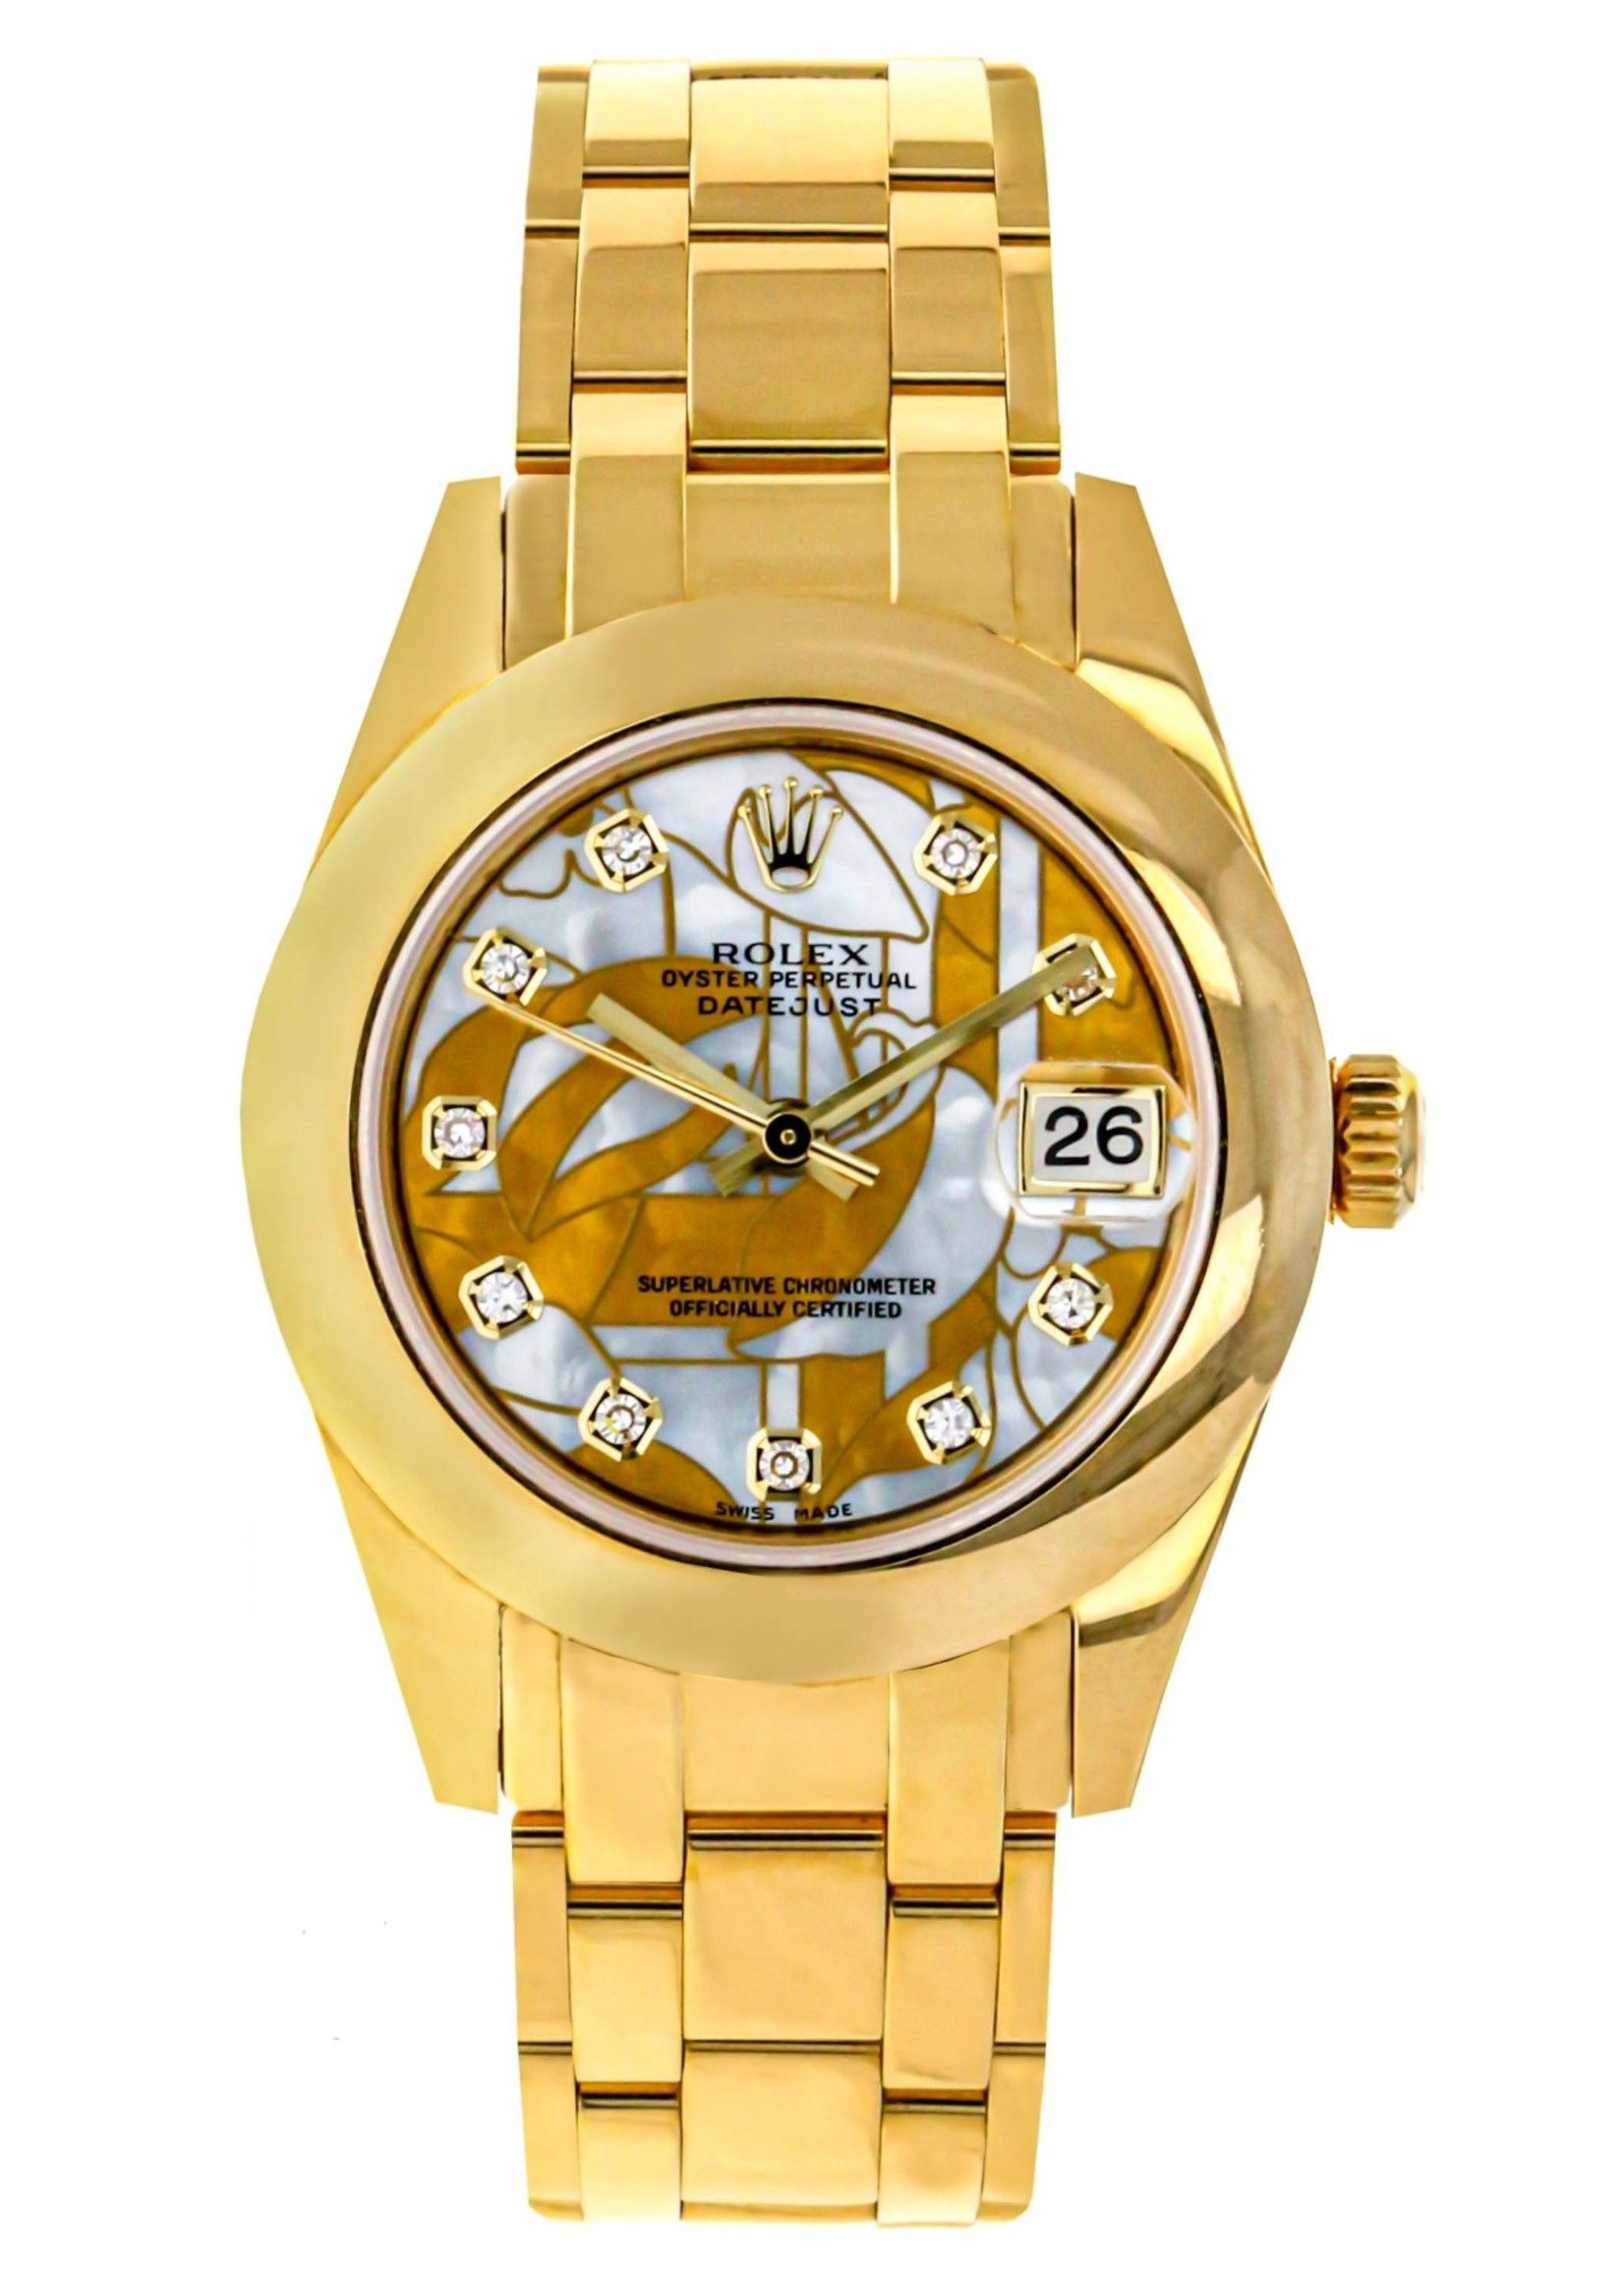 Rolex Watches Rolex Pearl Master 34MM Watch - Polished Bezel - Goldust Dream Mother-Of-Pearl Diamond Dial